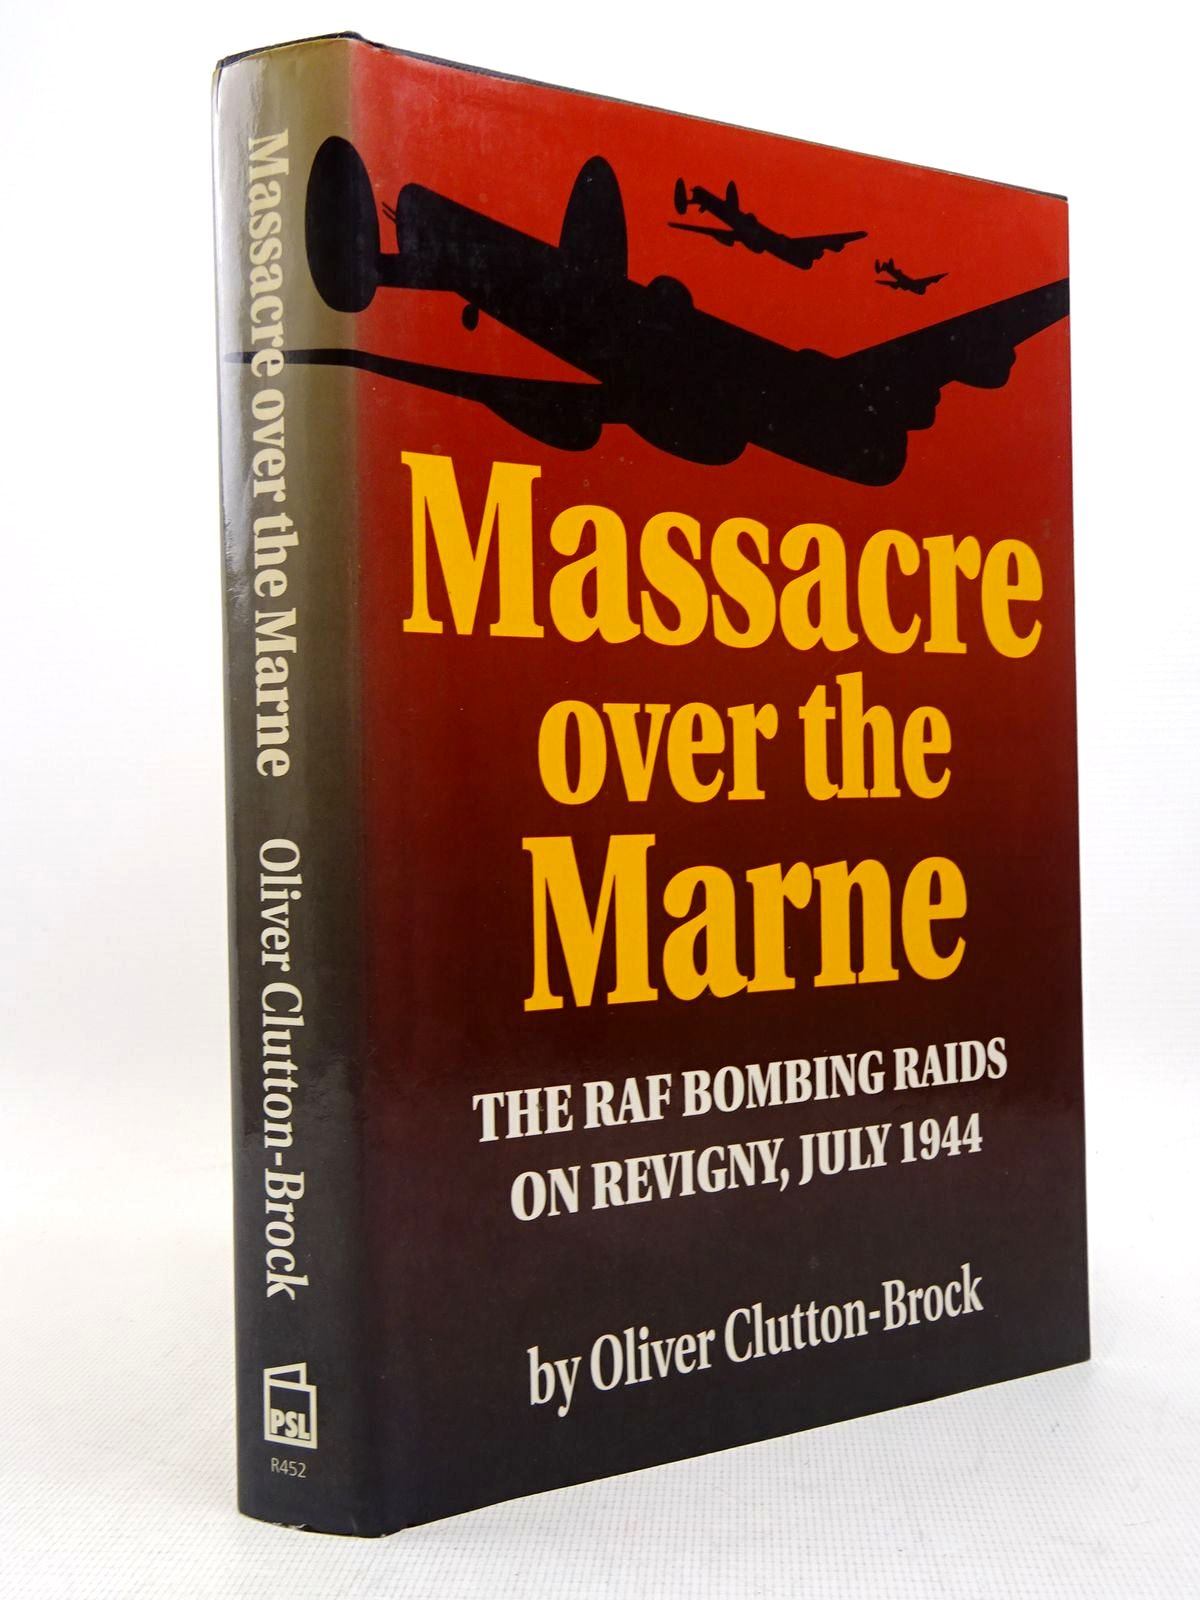 Photo of MASSACRE OVER THE MARNE written by Clutton-Brock, Oliver published by Patrick Stephens Limited (STOCK CODE: 1817167)  for sale by Stella & Rose's Books